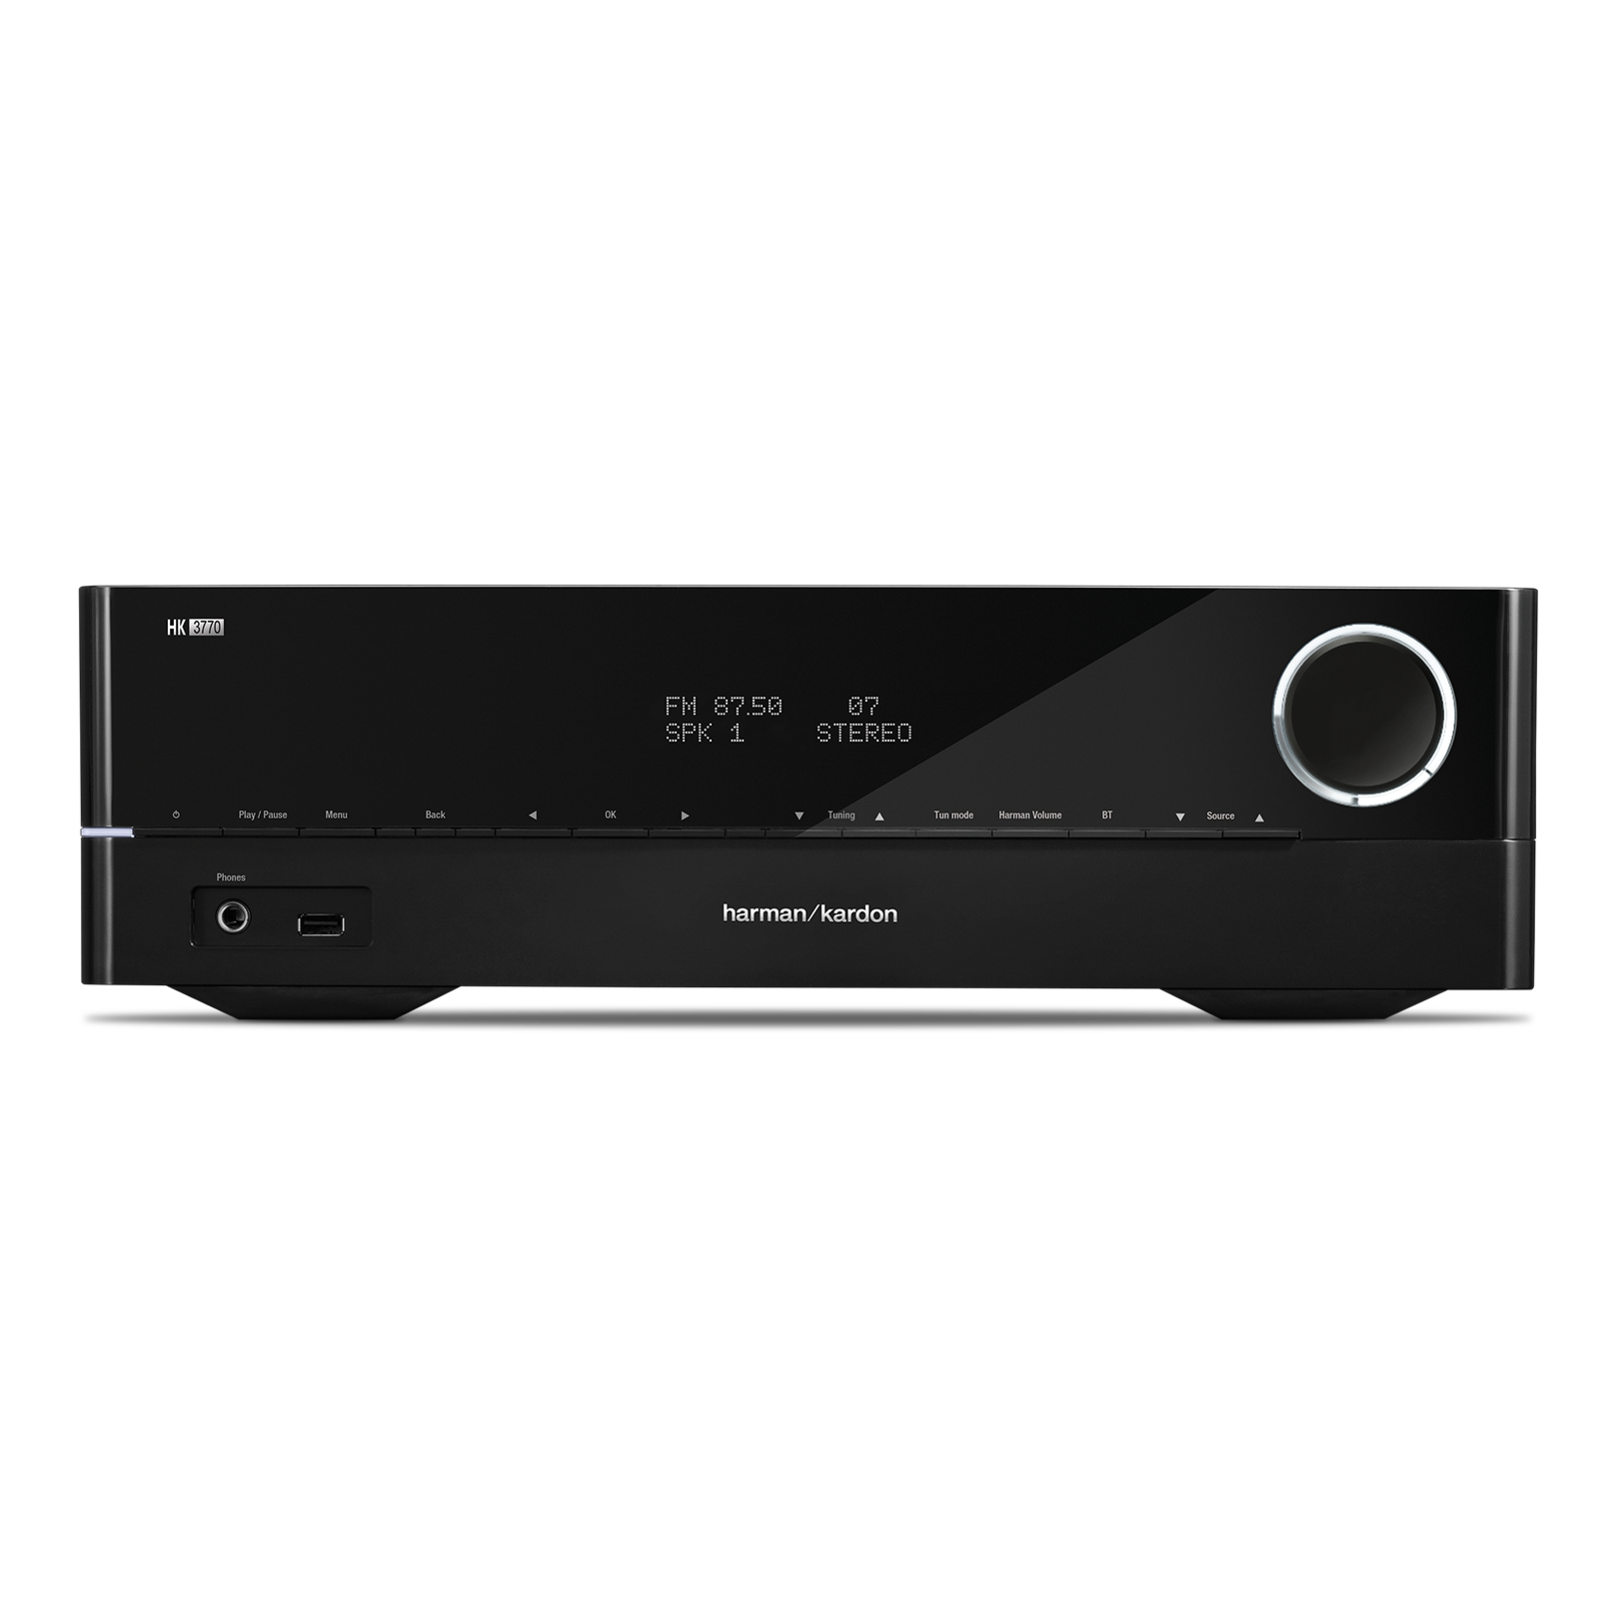 HK 3770 - Black - 240 watt stereo receiver with network connectivity - Hero